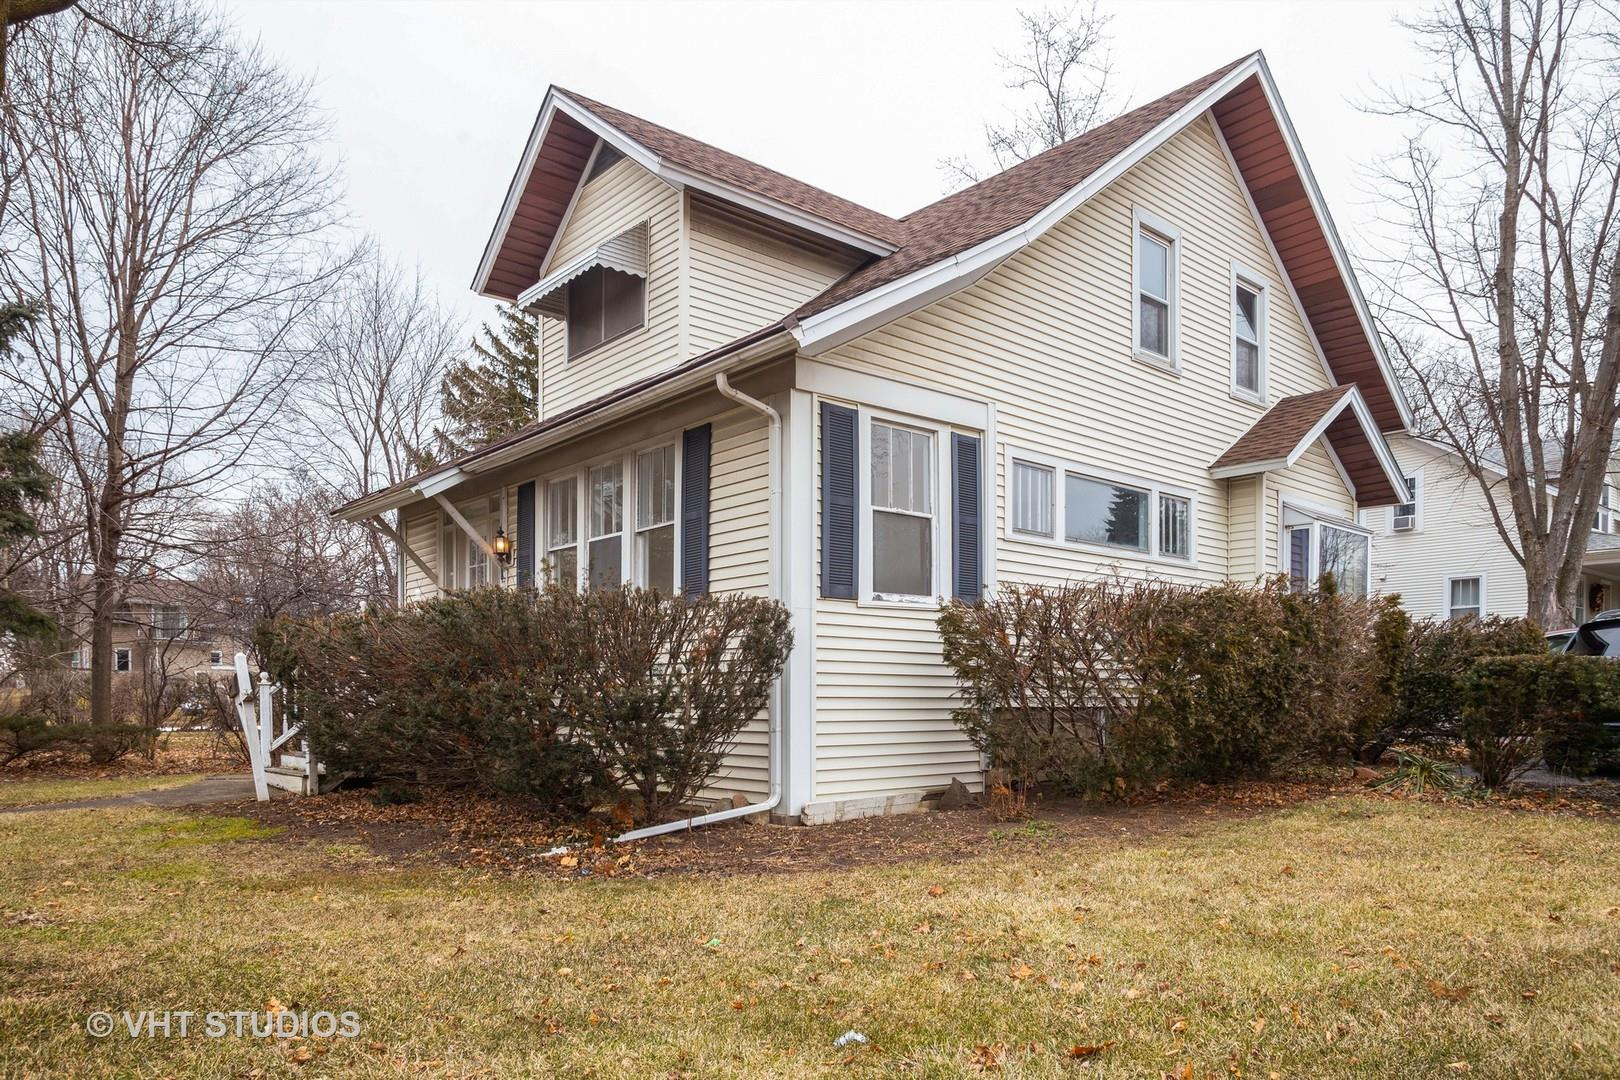 121 S ROSELLE Road, Roselle, IL 60172 - #: 10816053